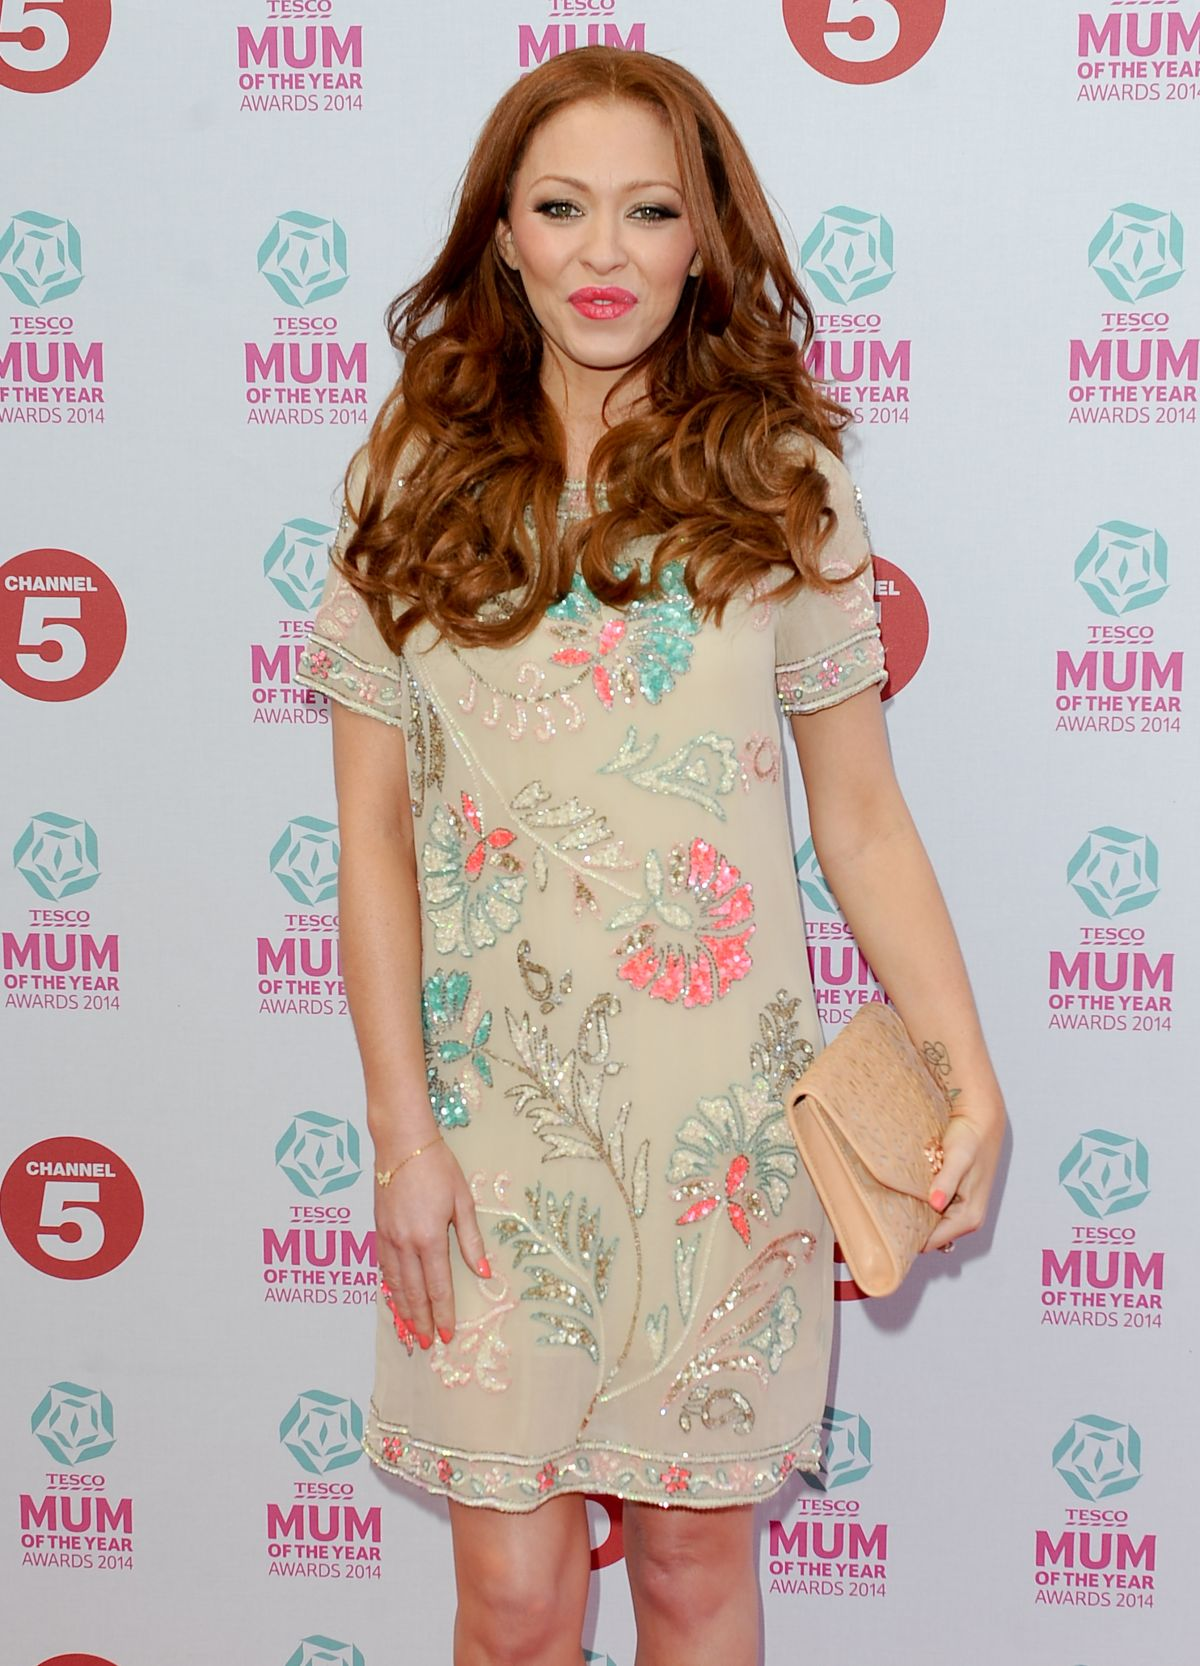 NATASHA HAMILTON at Tesco Mum of the Year Awards in London